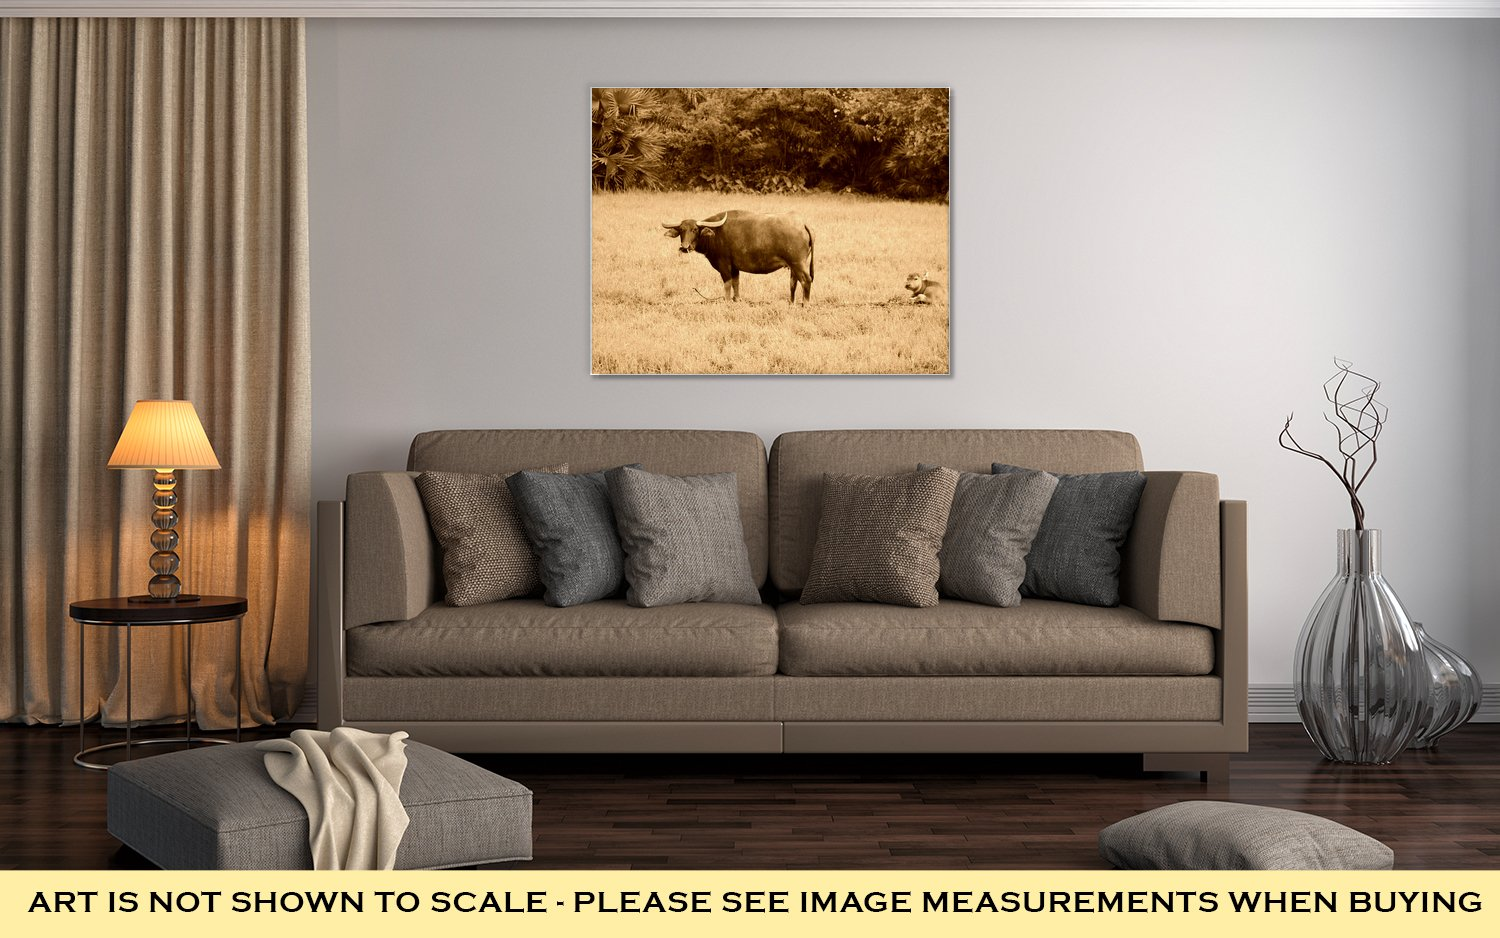 Ashley Canvas Thai Buffalo Walk Over The Field Go Back Home With Sunset Life Machine Of, Wall Art Home Decor, Ready to Hang, Sepia, 16x20, AG6343402